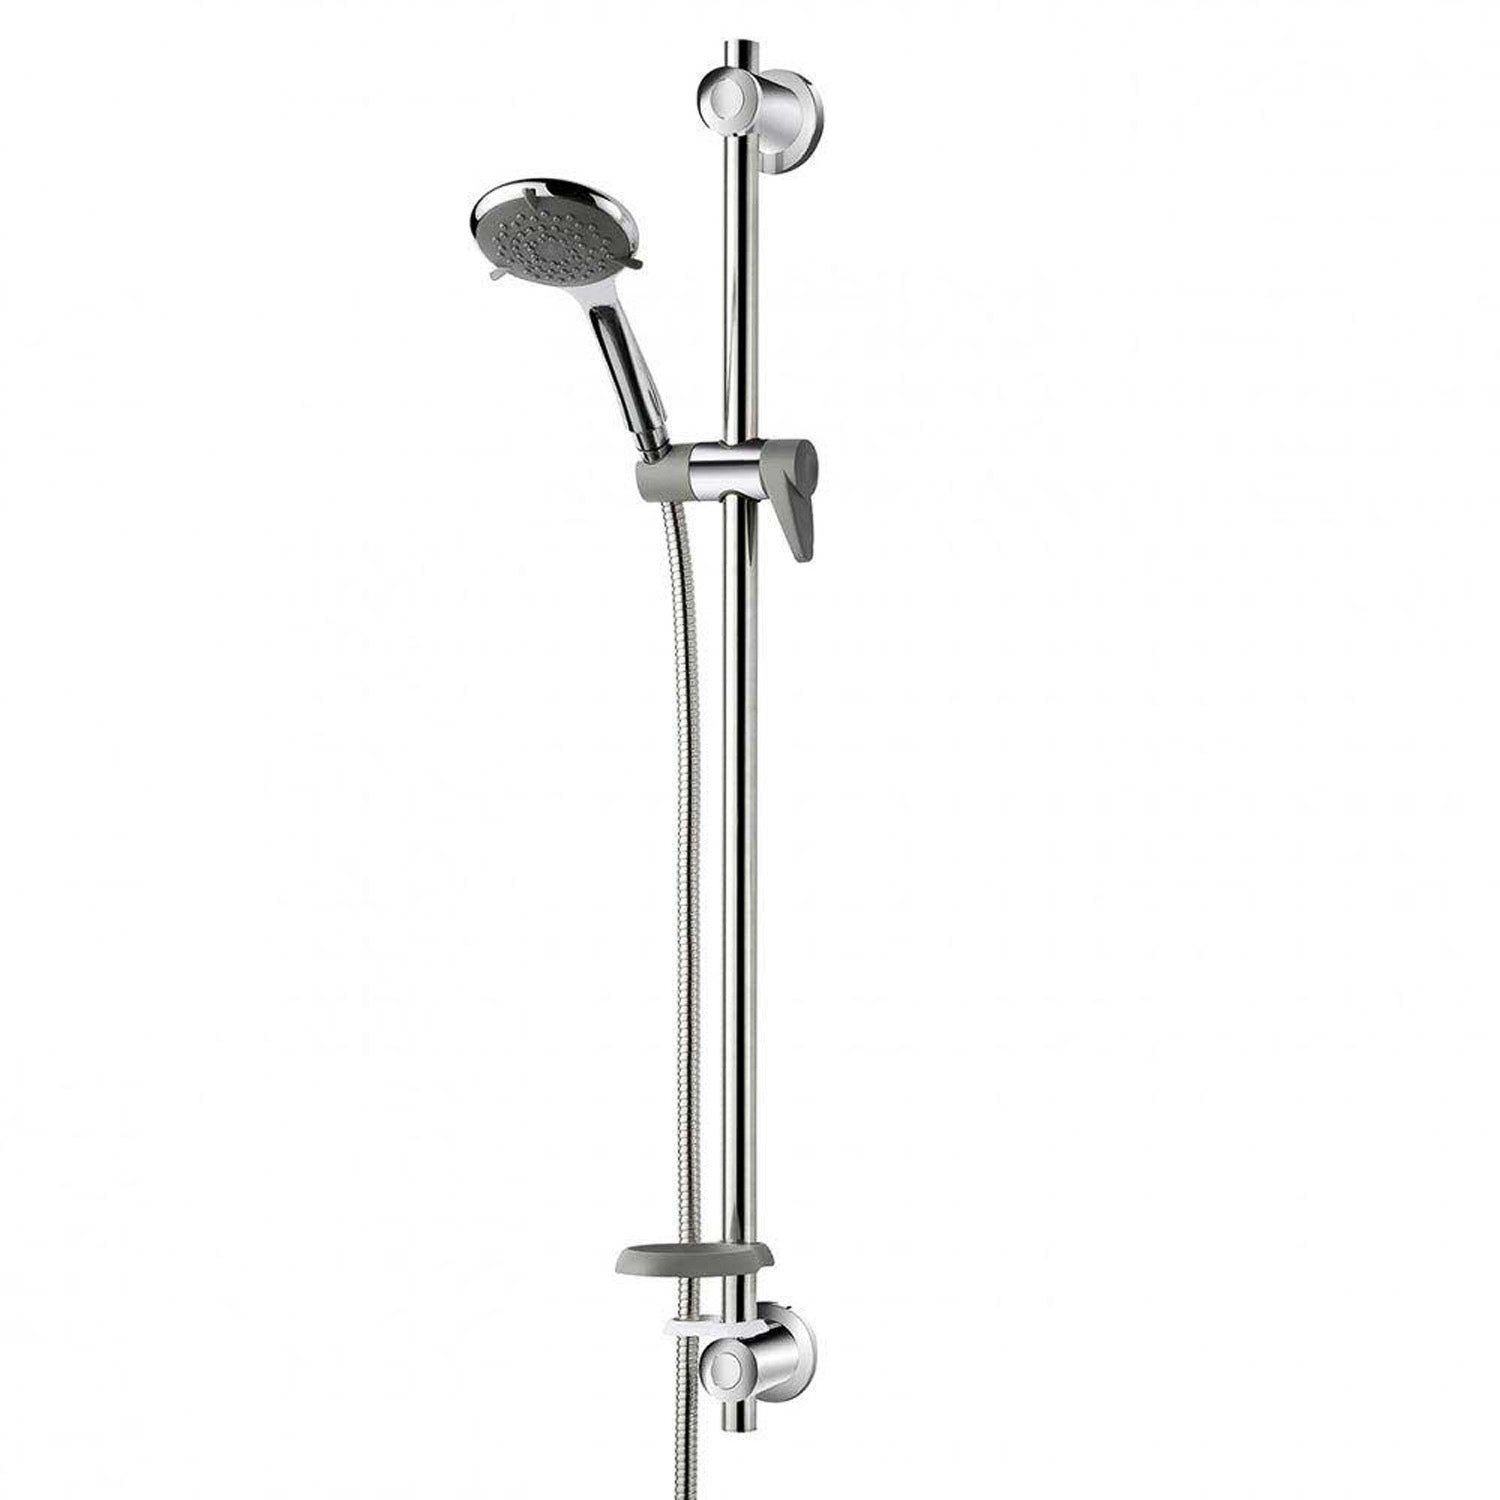 940mm Modale Supportive Shower Rail Kit with a chrome finish on a white background